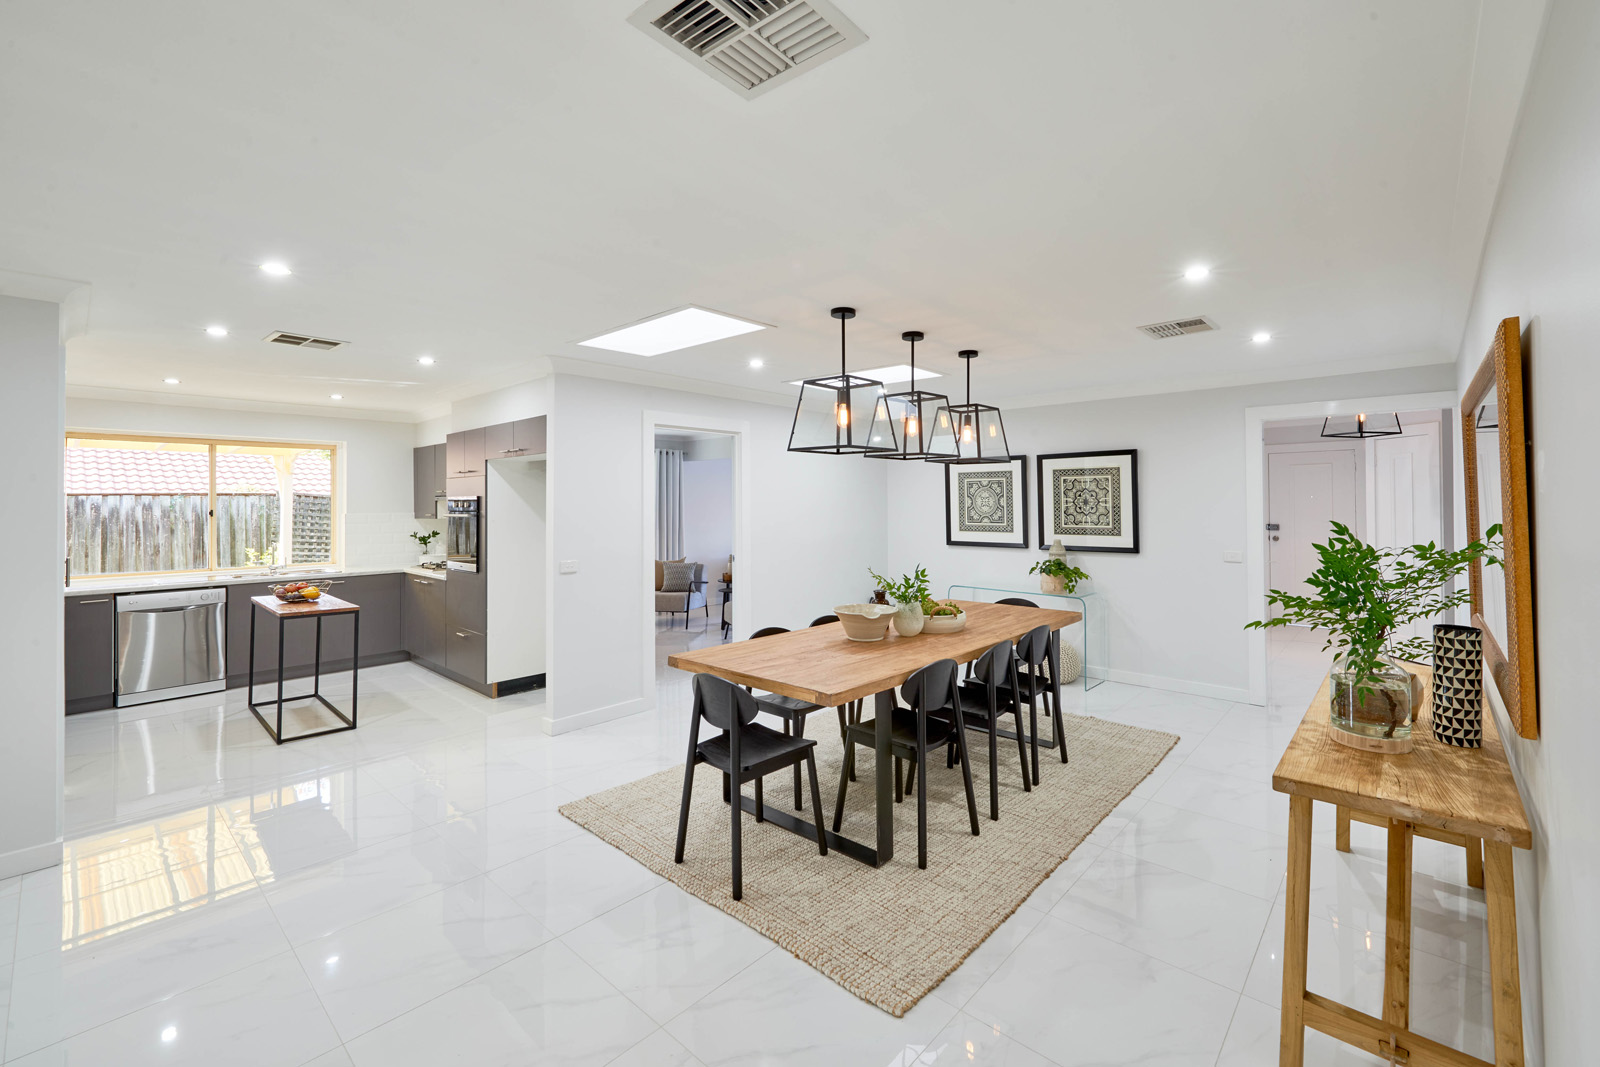 Cherie-Barber_Renovating-For-Profit_Successful-Floorplan_Dural-Dining-After